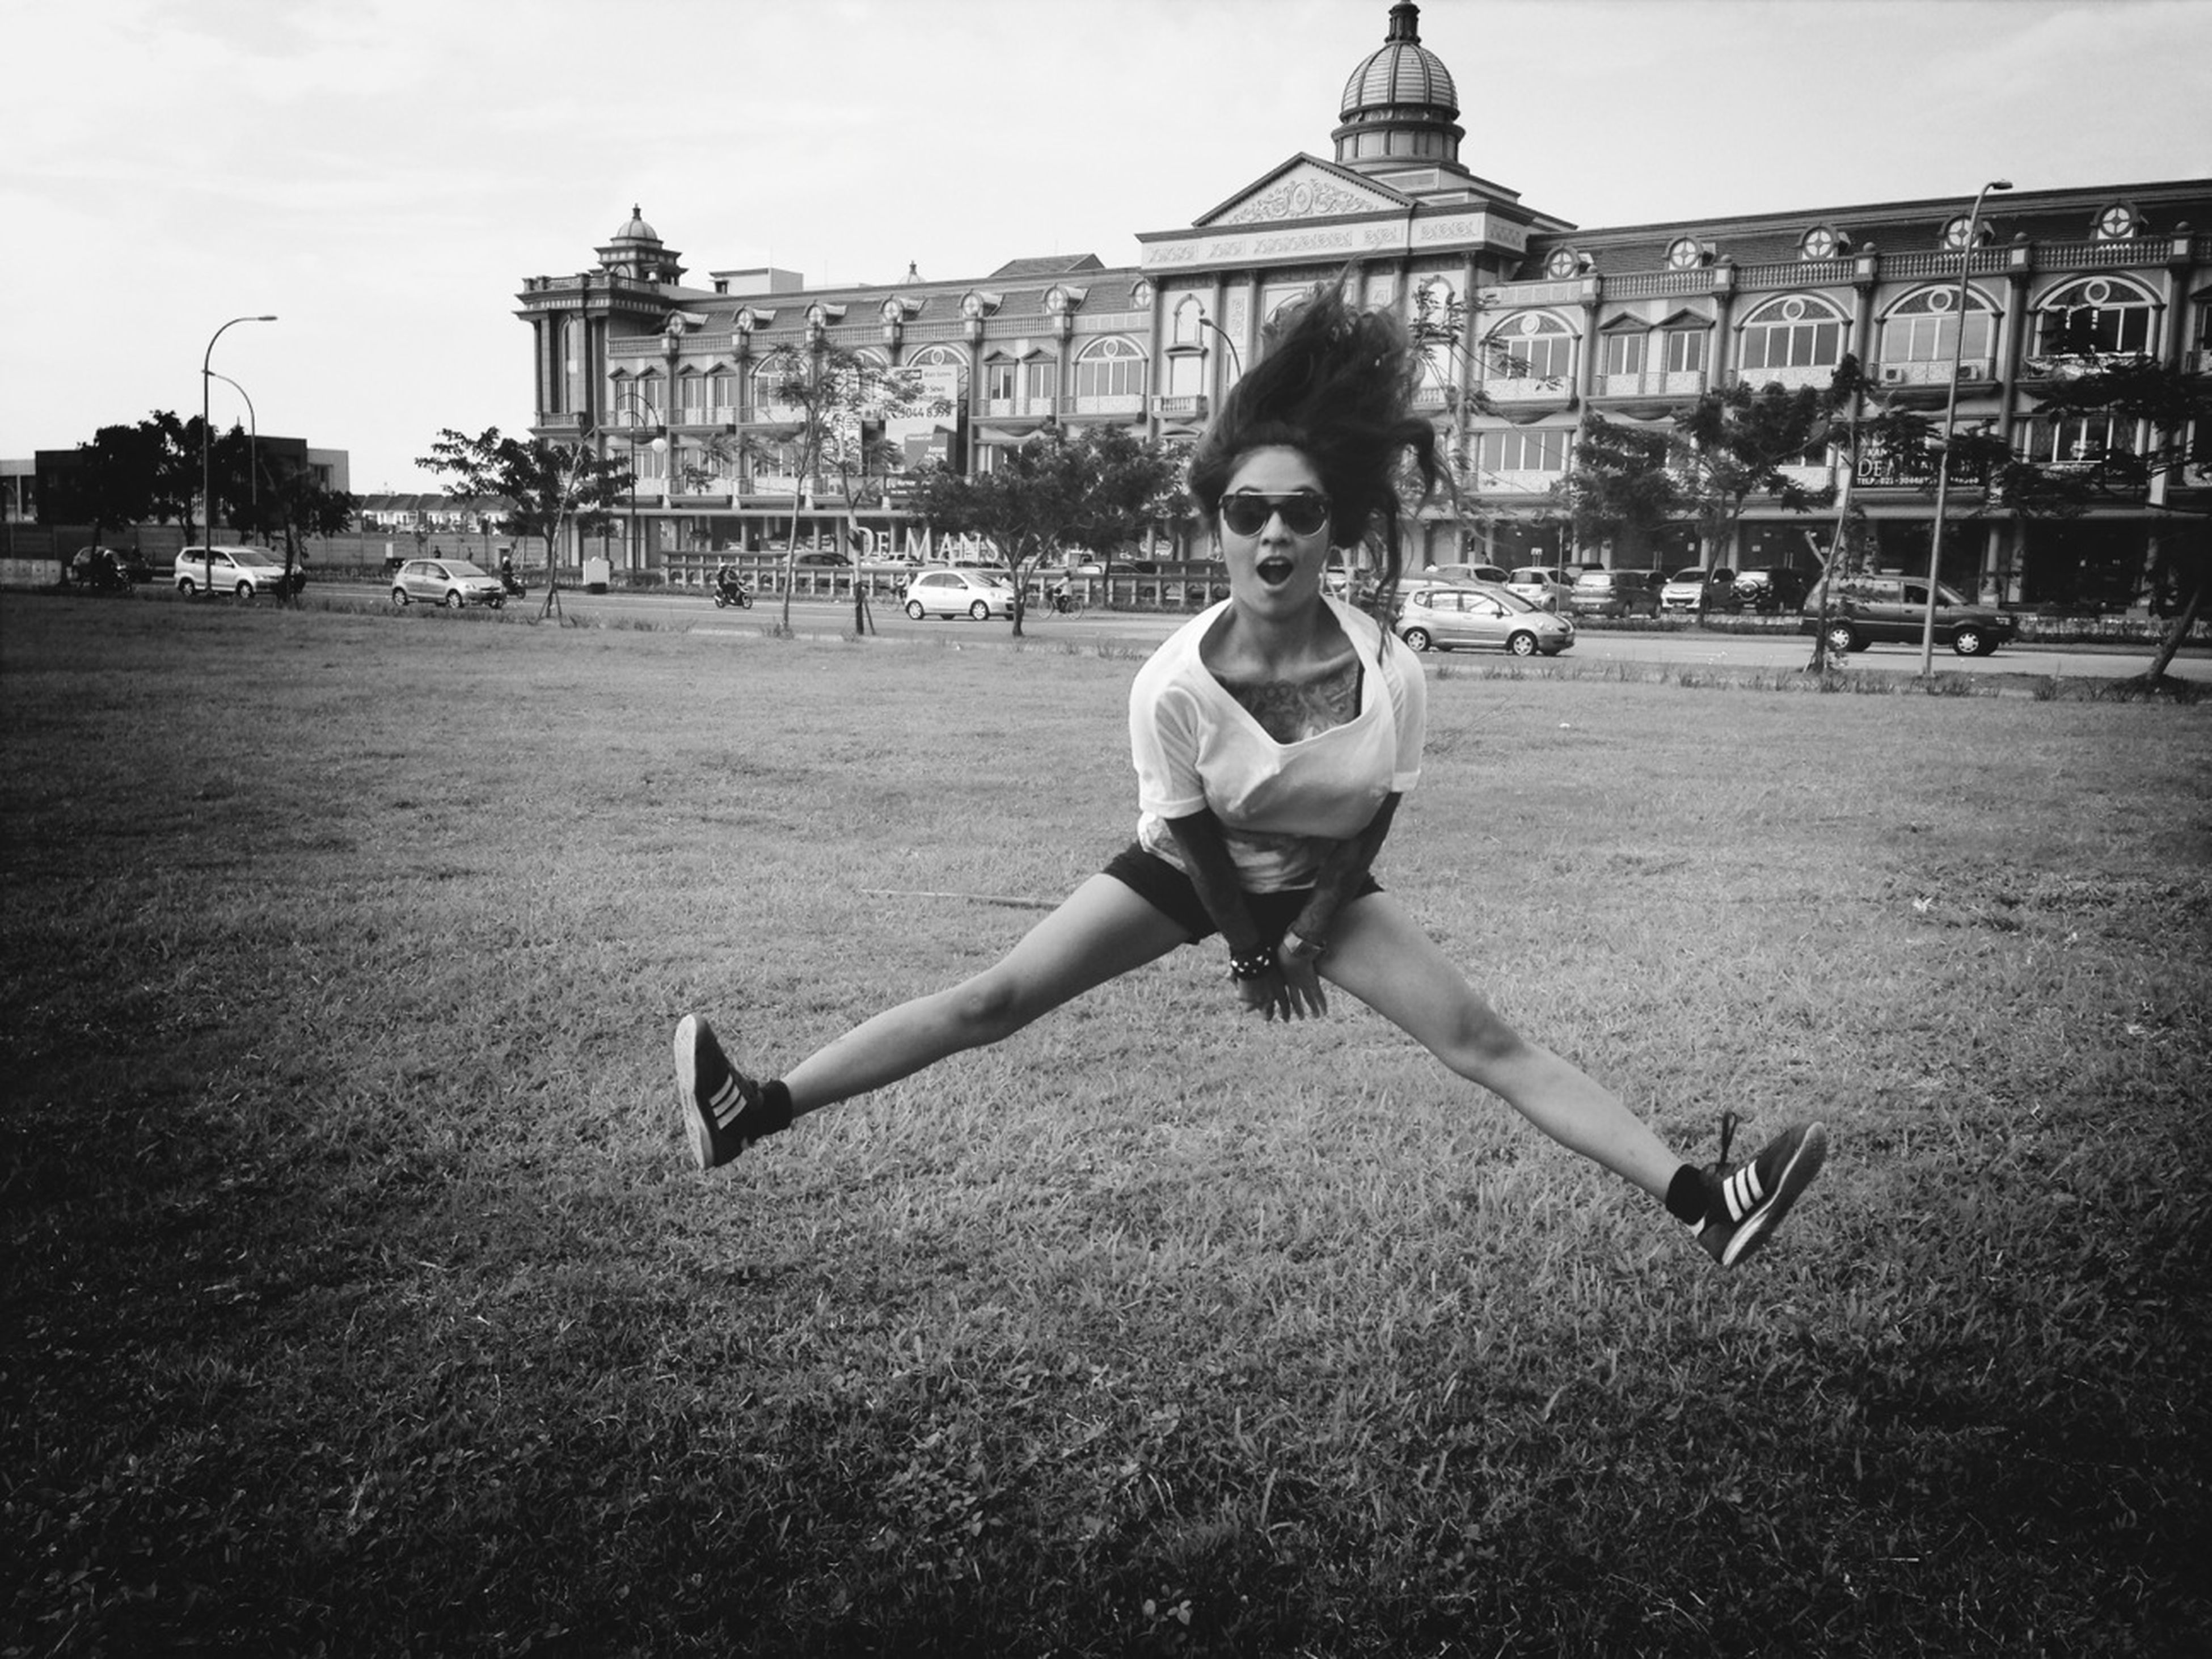 childhood, lifestyles, person, leisure activity, full length, elementary age, casual clothing, boys, building exterior, built structure, architecture, girls, happiness, fun, playing, grass, mid-air, enjoyment